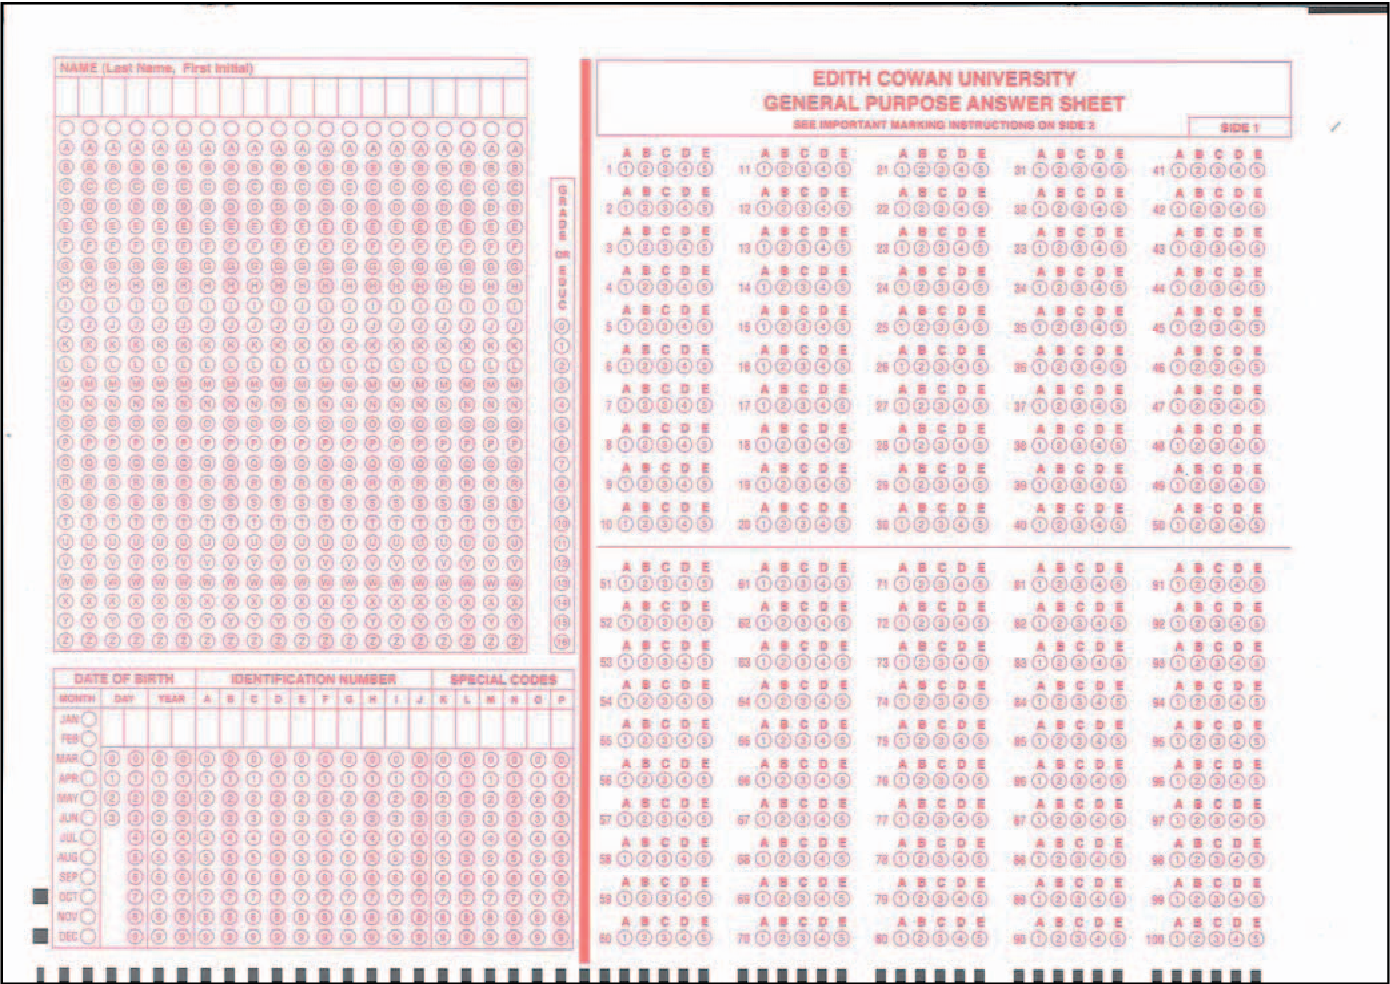 Automated marking of printed multiple choice answer sheets